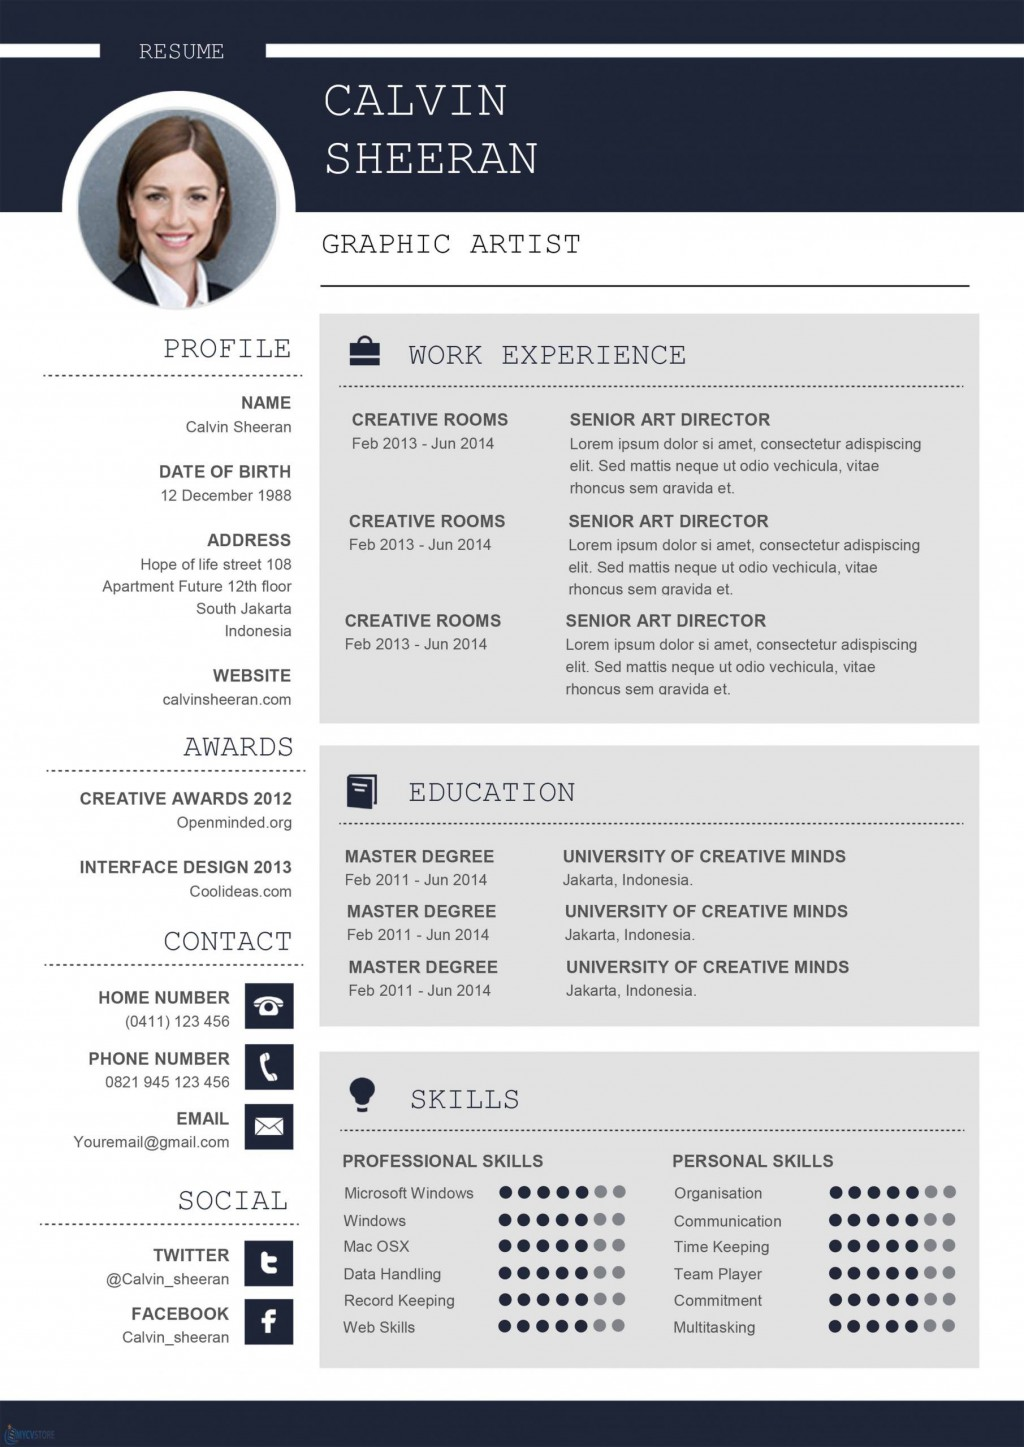 002 Incredible Resume Microsoft Word Template Picture  Cv/resume Design Tutorial With Federal DownloadLarge